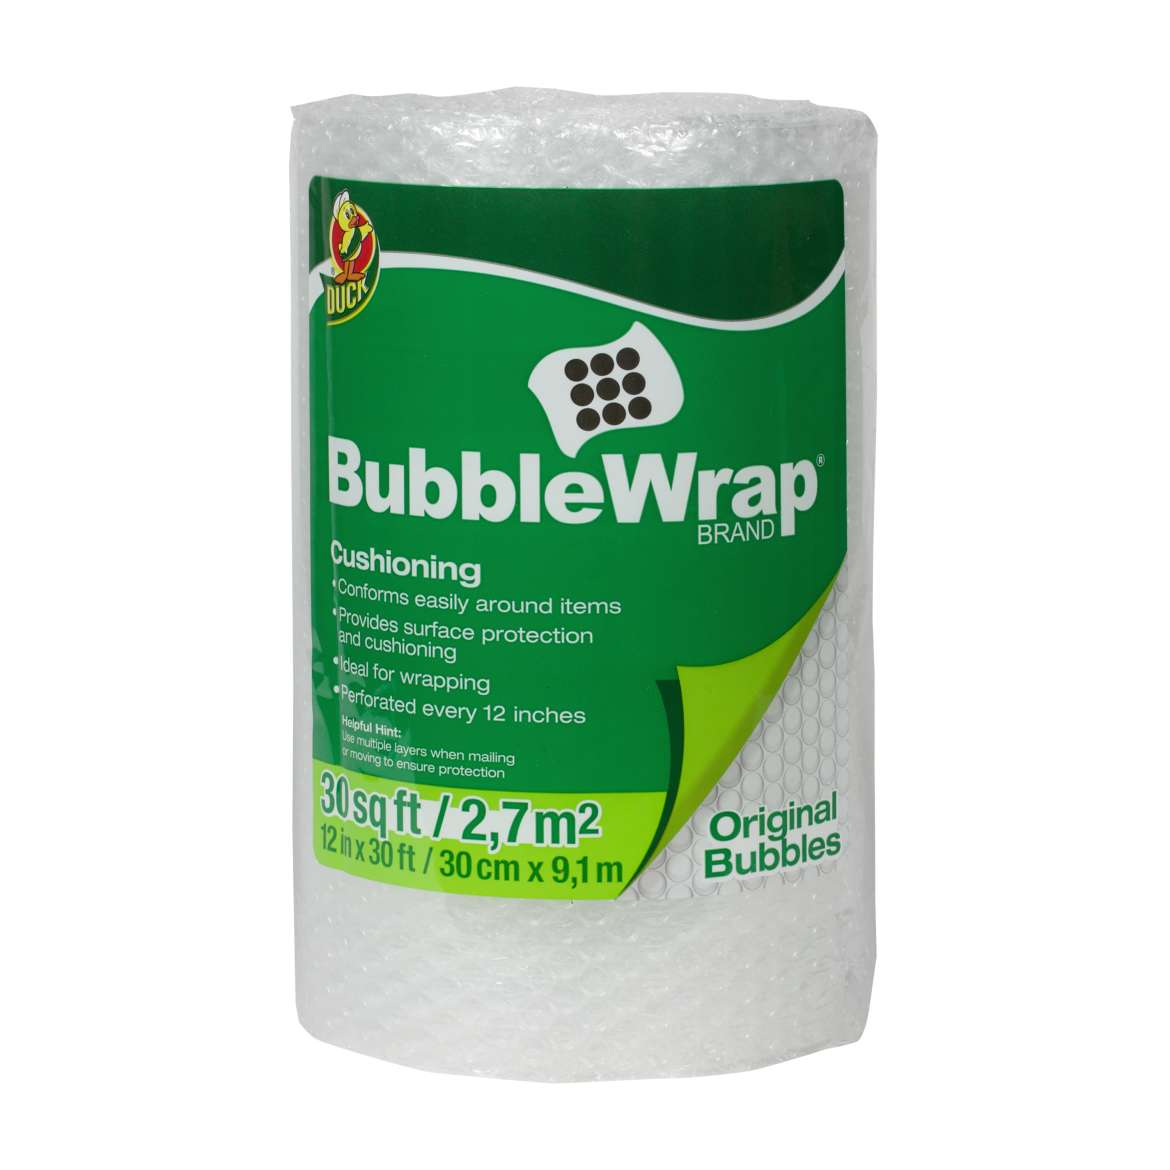 Duck® Brand Original Bubble Wrap® Cushioning - Clear, 12 in. x 30 ft. Image